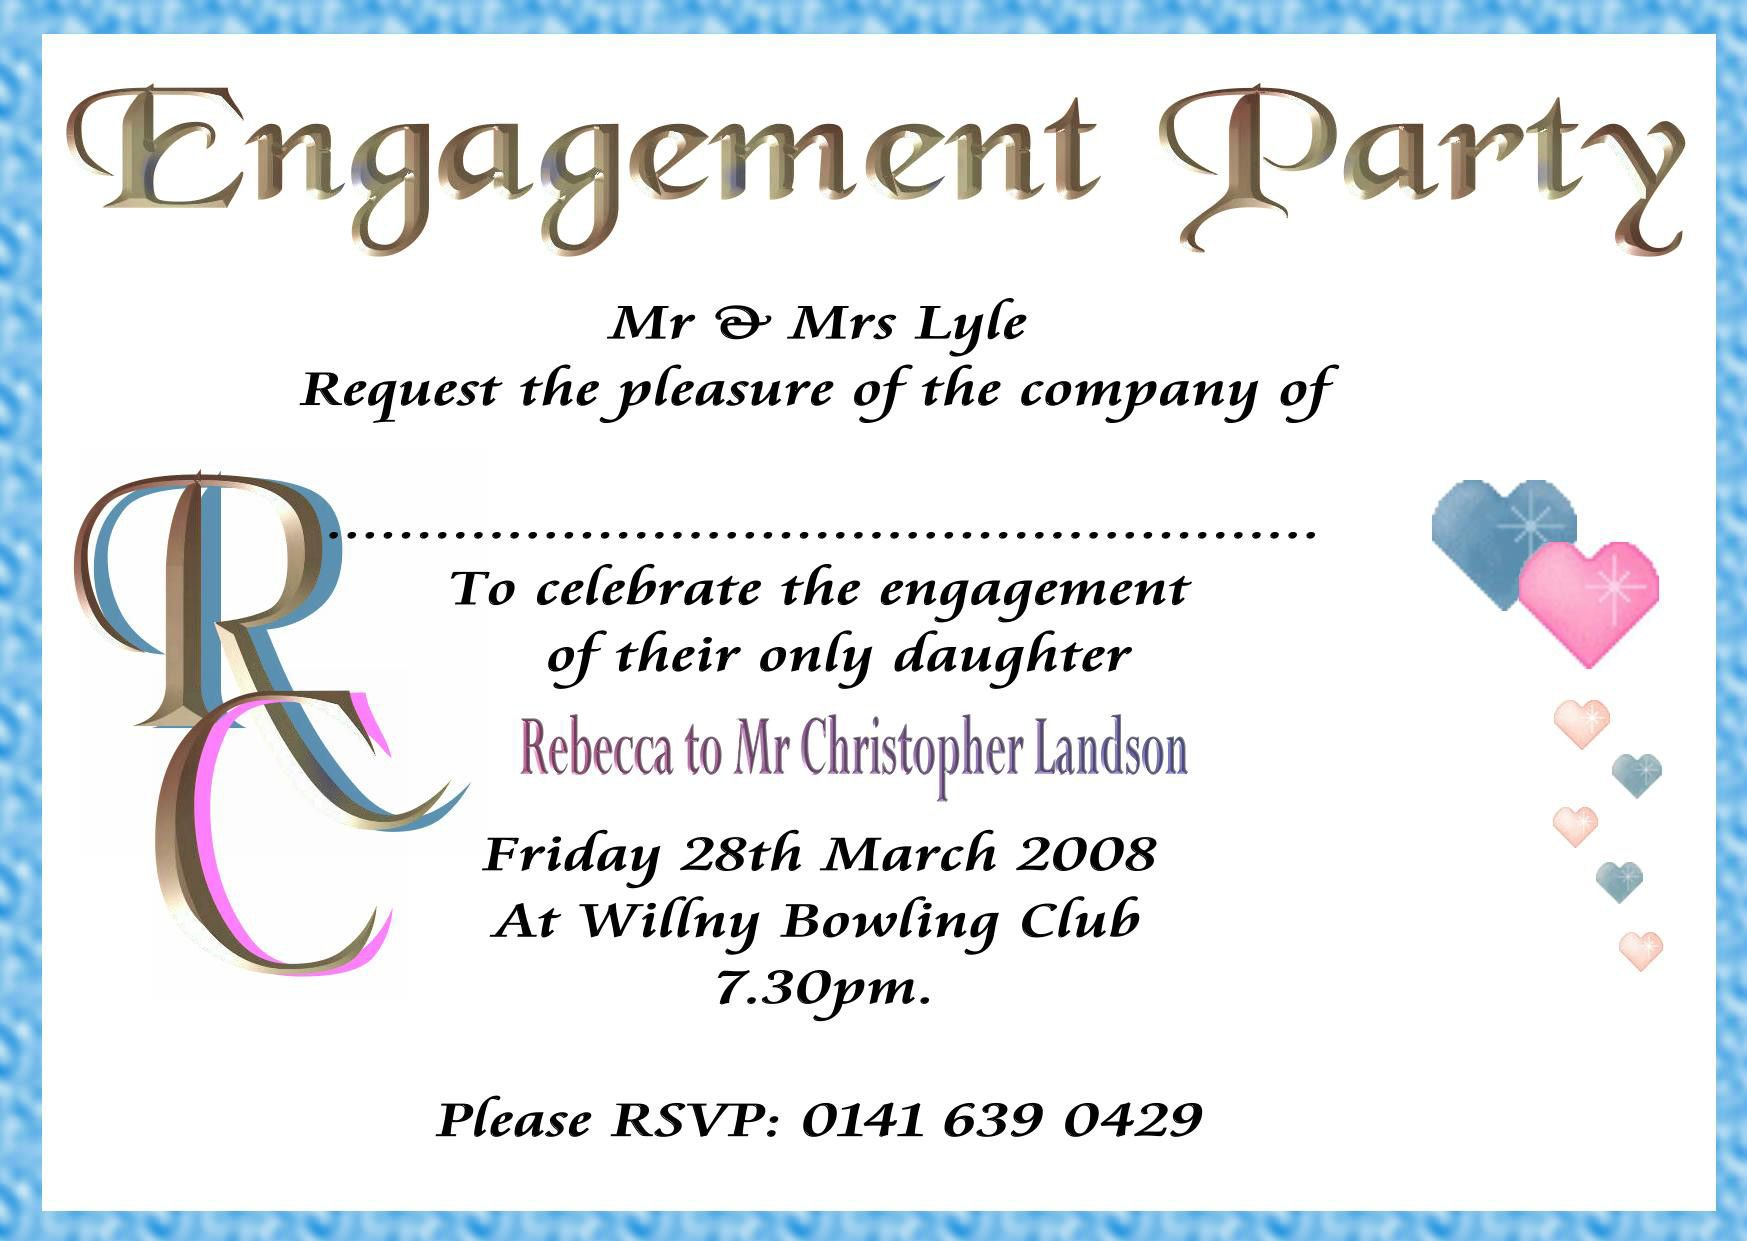 Format Of Engagement Invitation Engagement Party Invitation Template Invitation Templates .